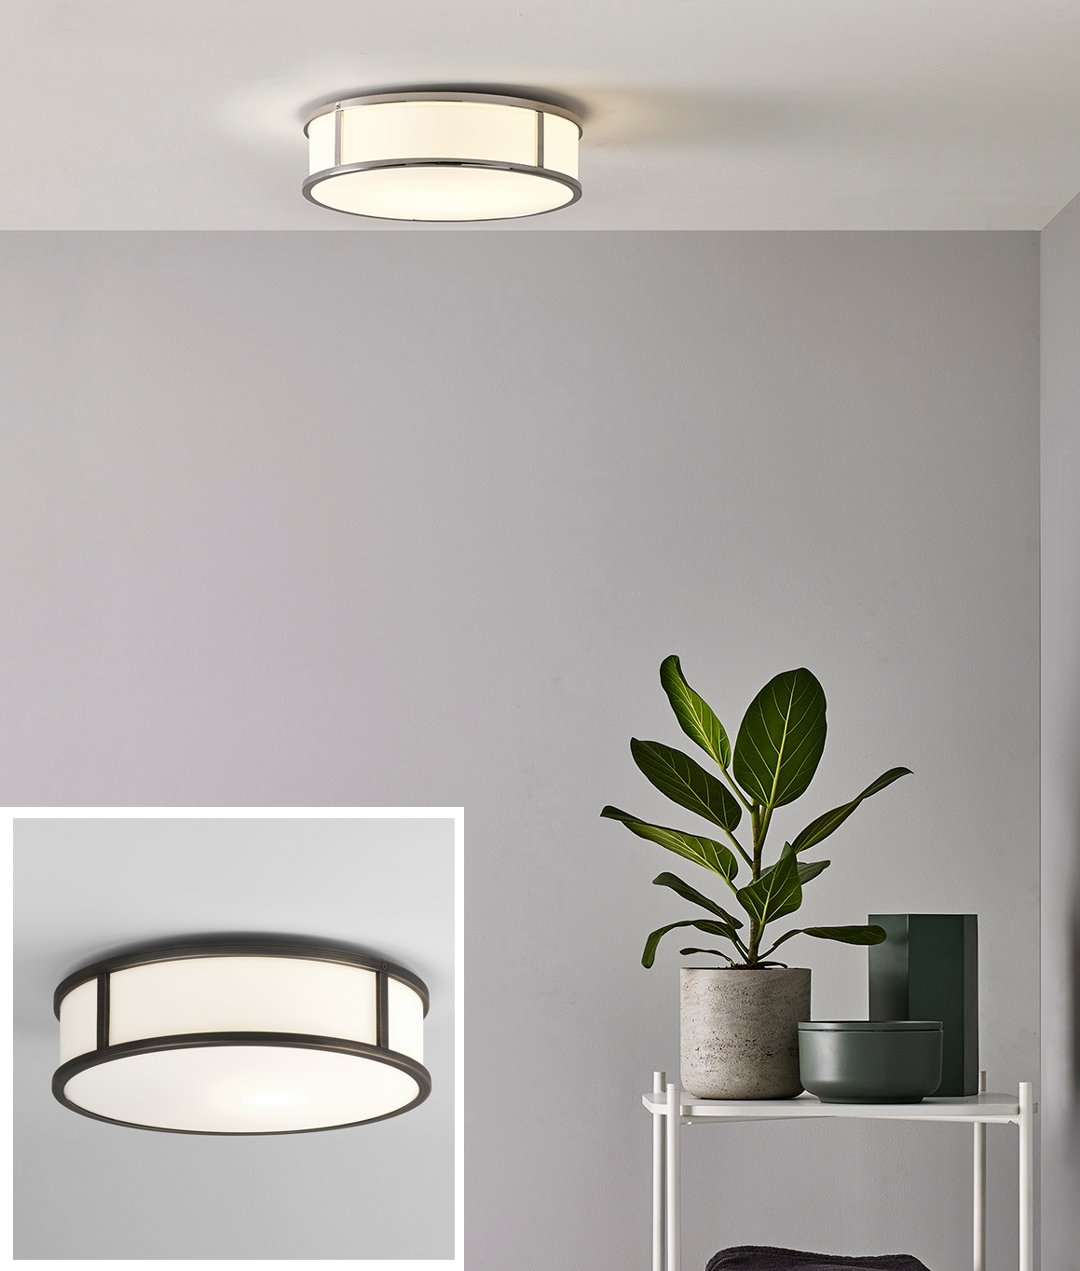 Round Framed Opal Glass Ceiling Light Finished In Chrome Or Bronze Ip44 Designed For The Bathroom